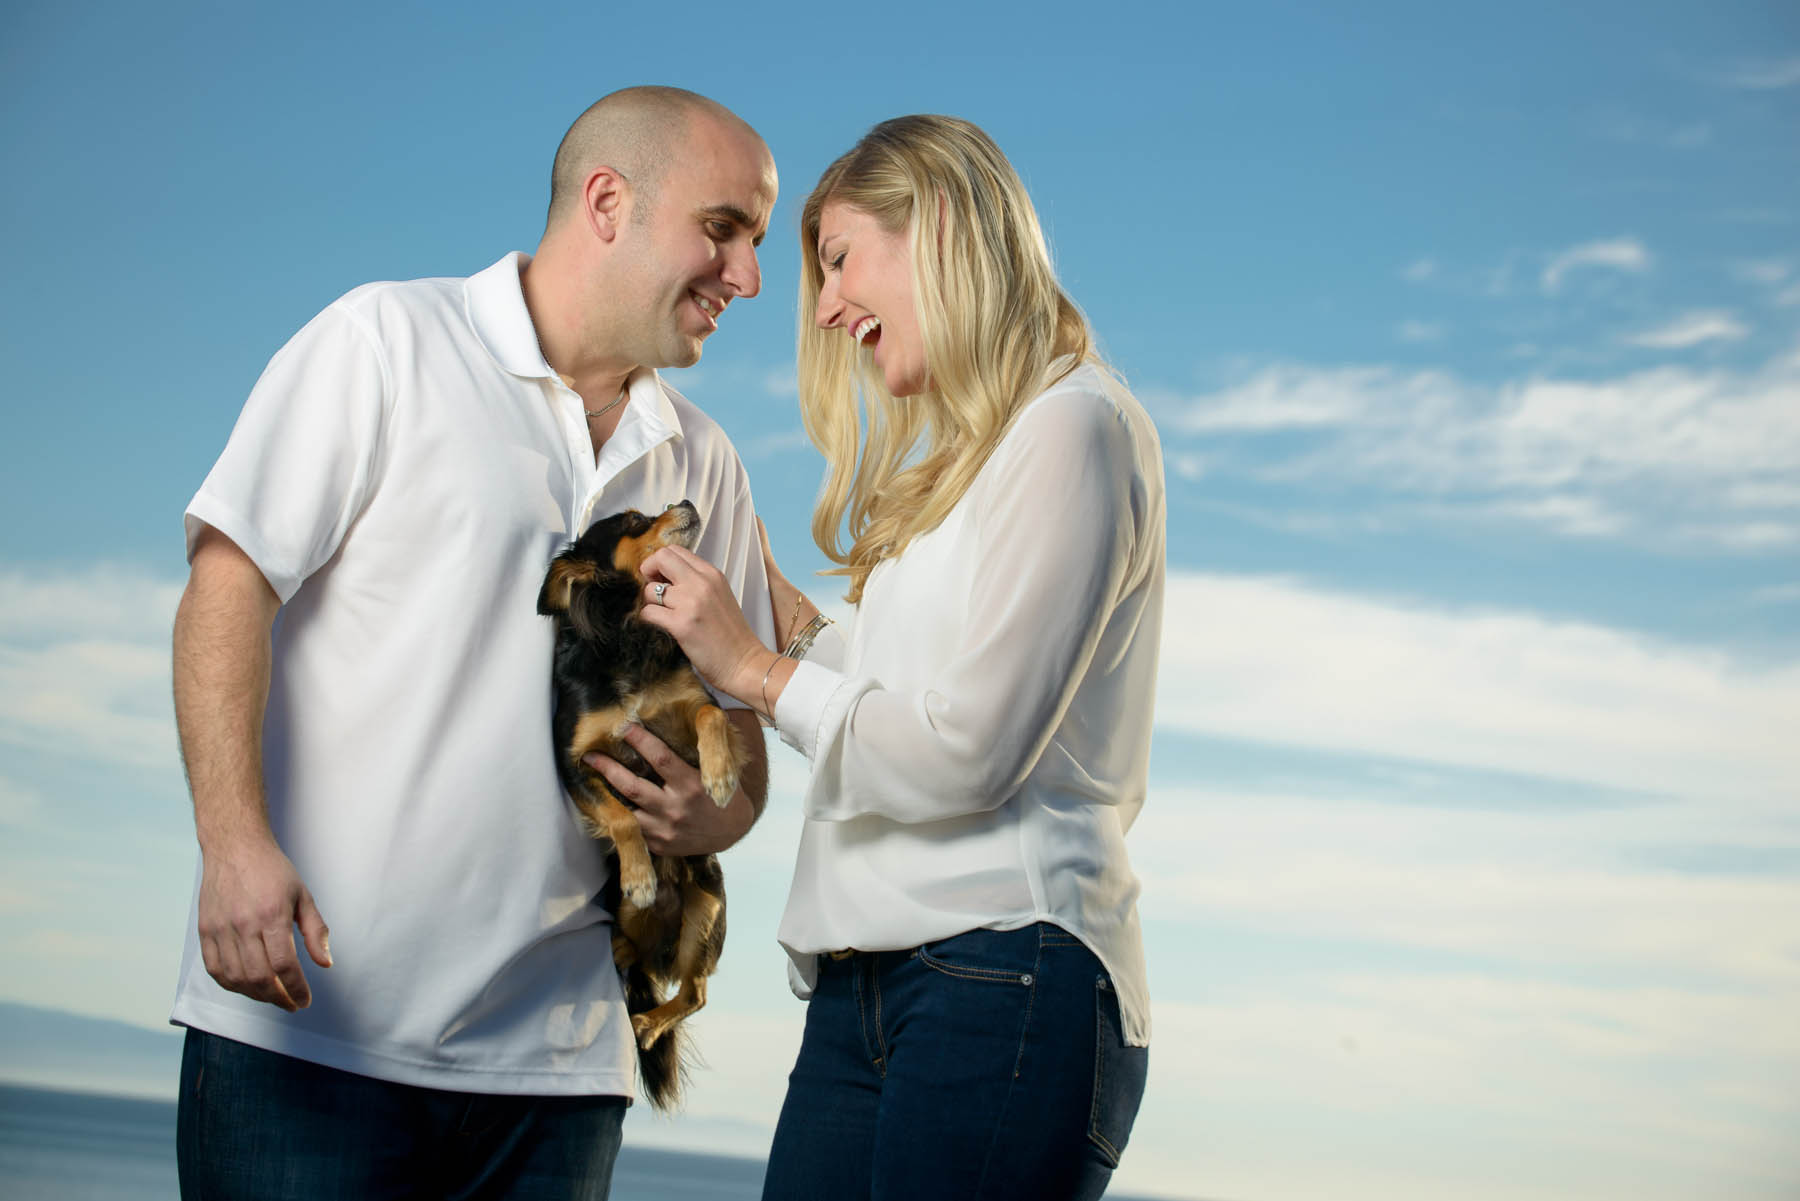 0125_d800b_Molly_and_Jay_Capitola_Beach_Engagement_Photography.jpg